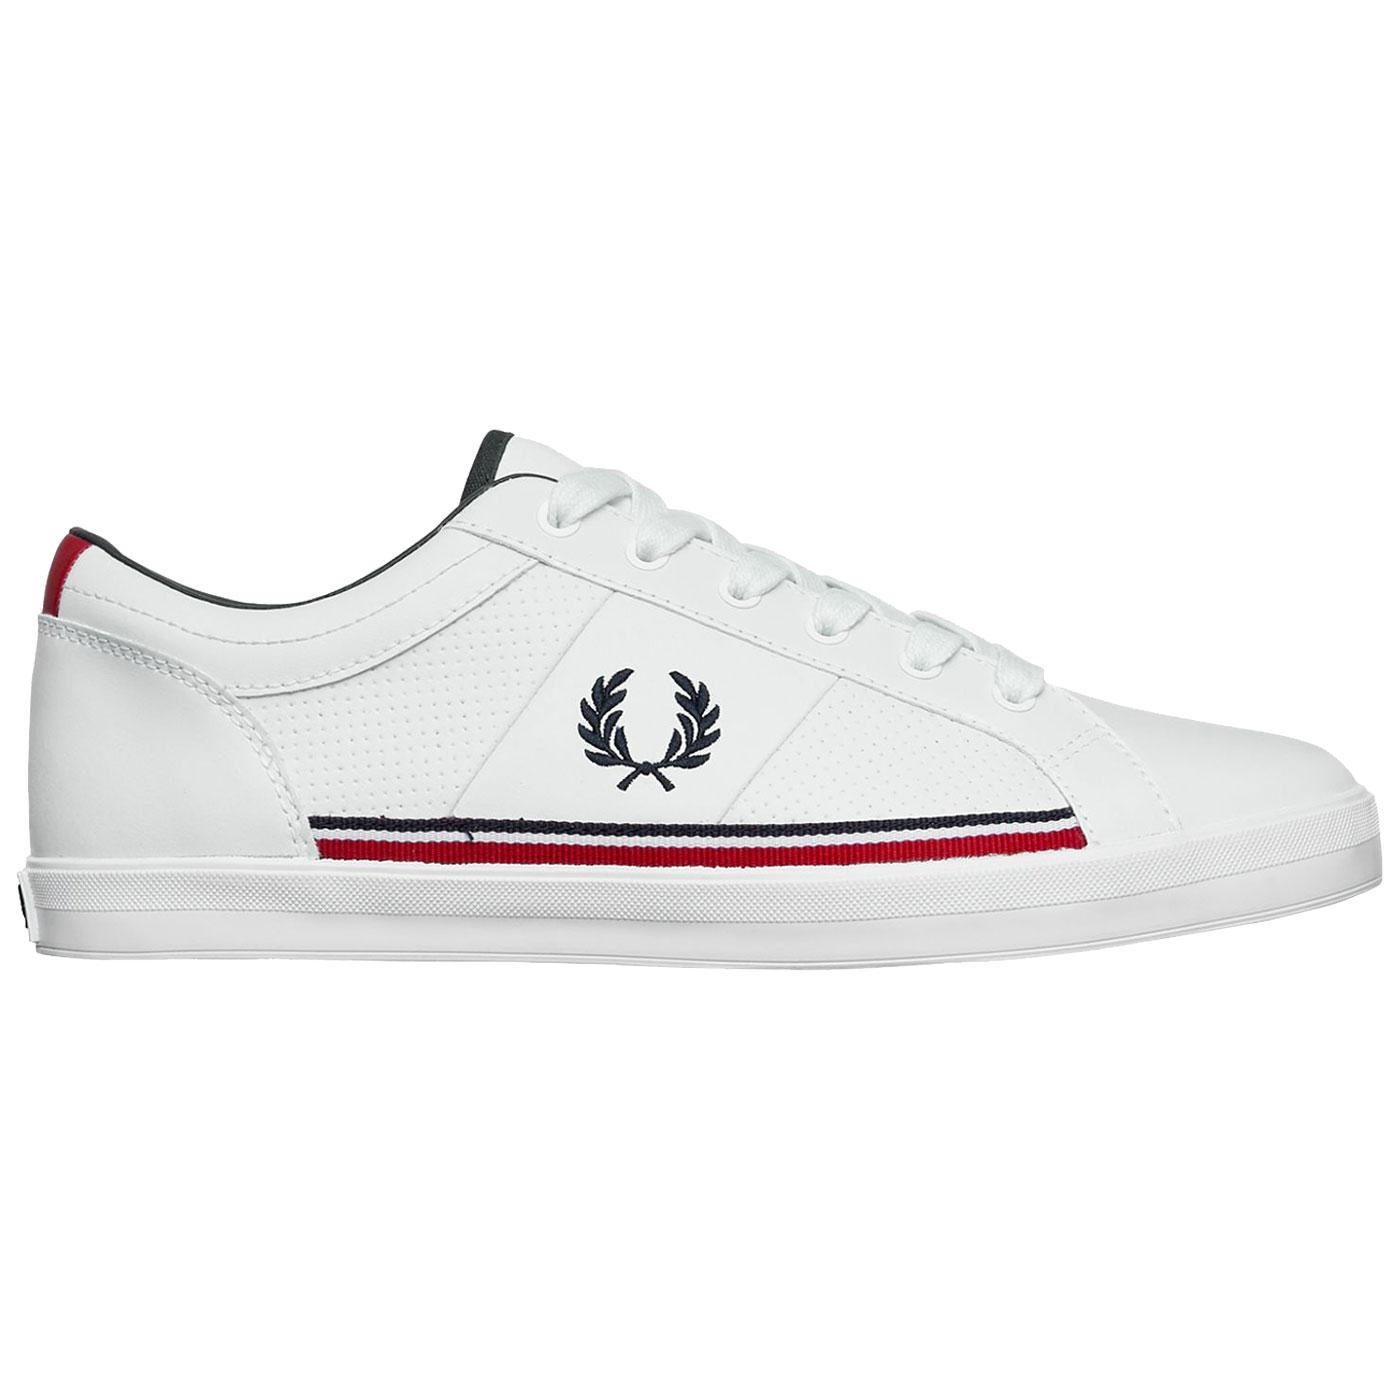 Baseline FRED PERRY Leather Perforated Trainers W